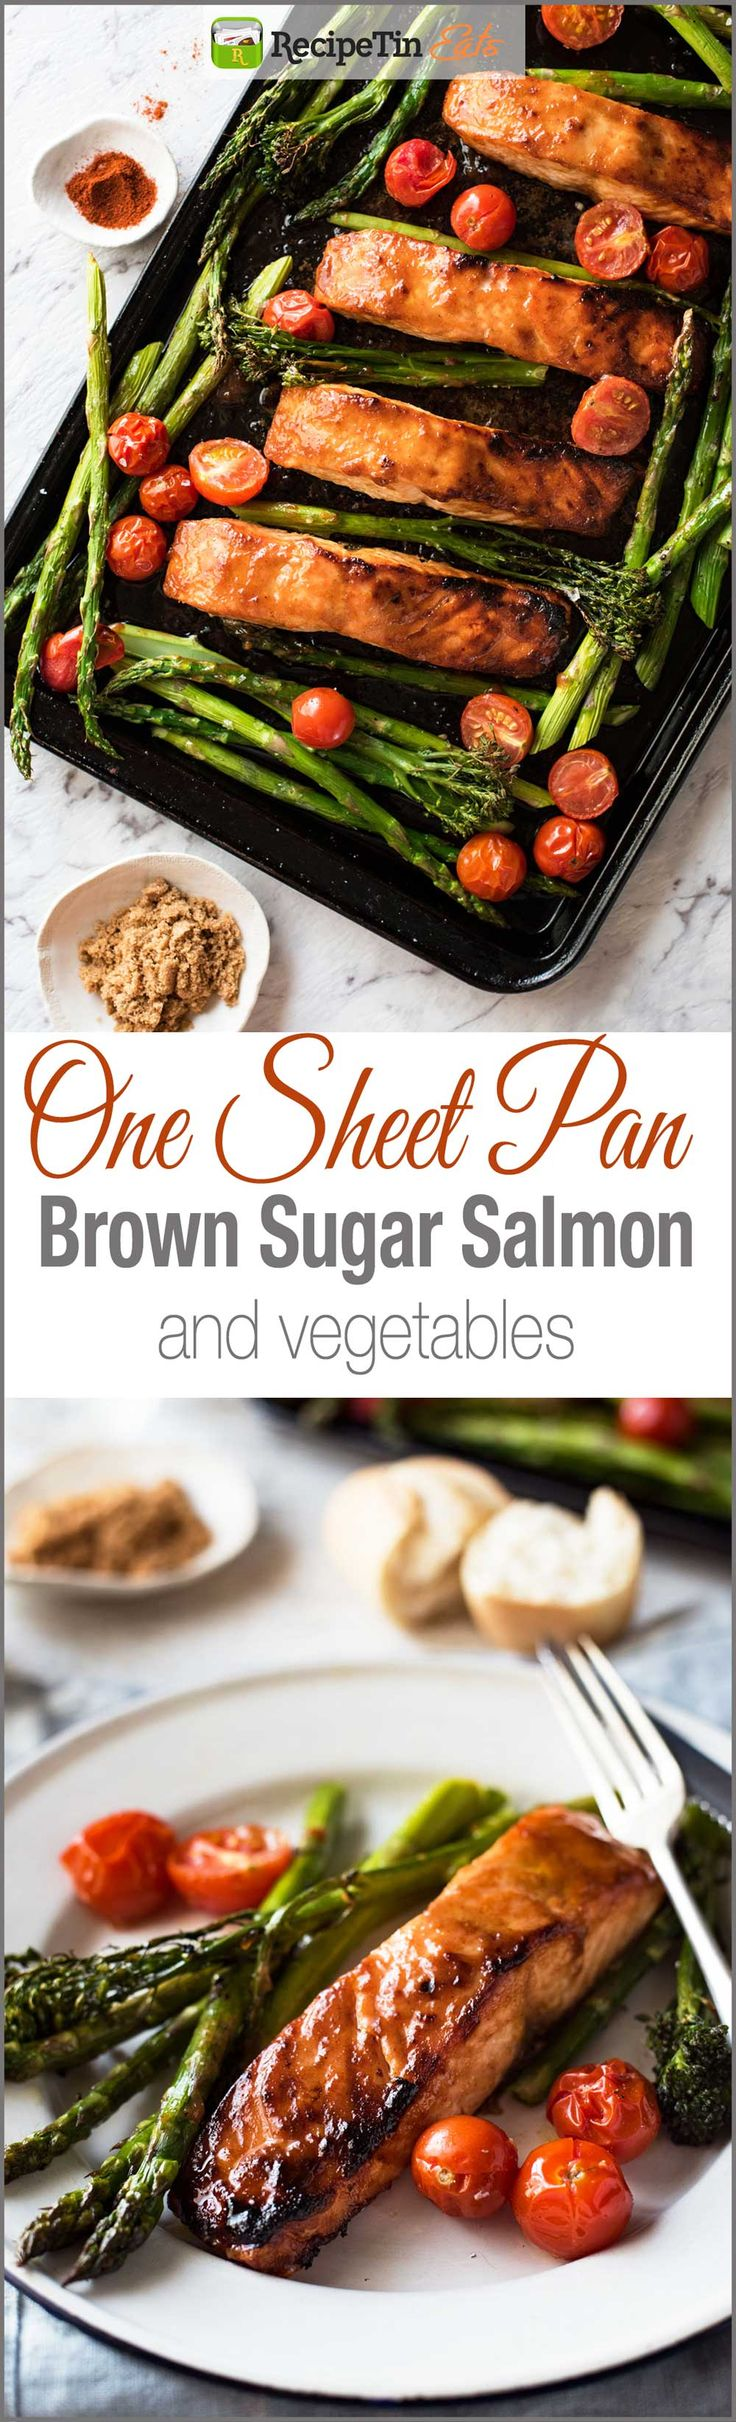 One Sheet Pan Brown Sugar Salmon & Vegetables  The Glaze Taste Incredible  And This Whole